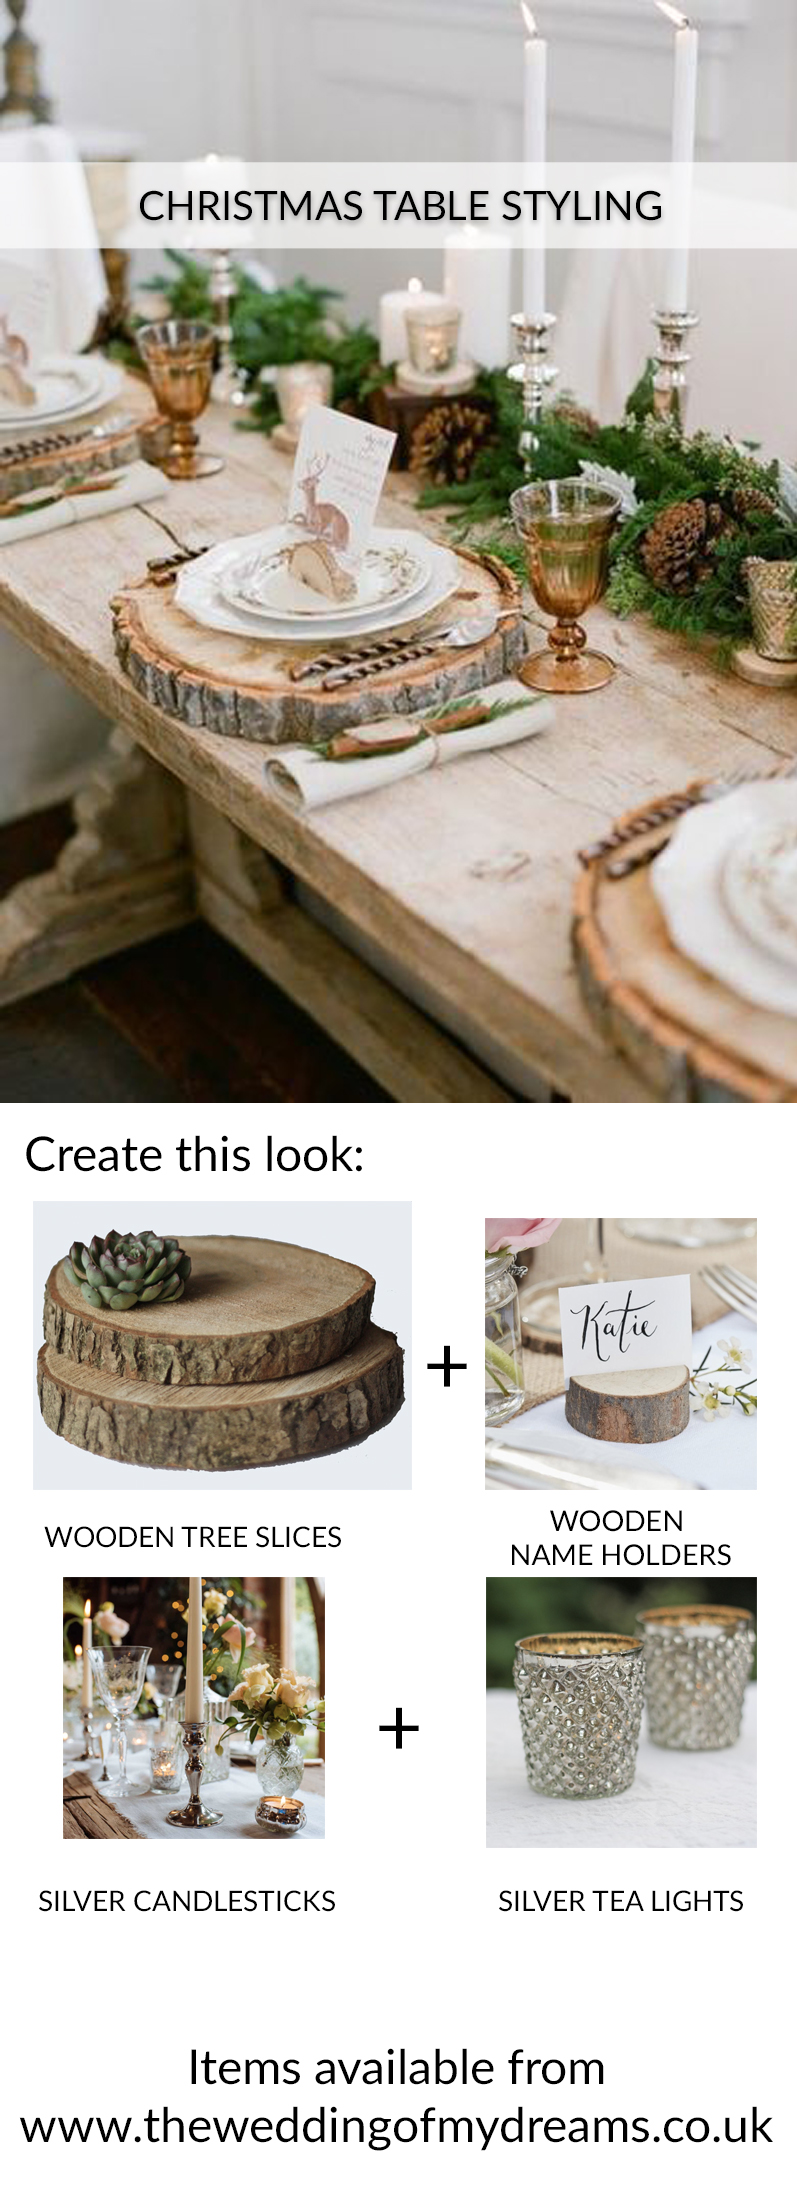 CHRISTMAS TABLE STYLING IDEAS RUSTIC WOODLAND